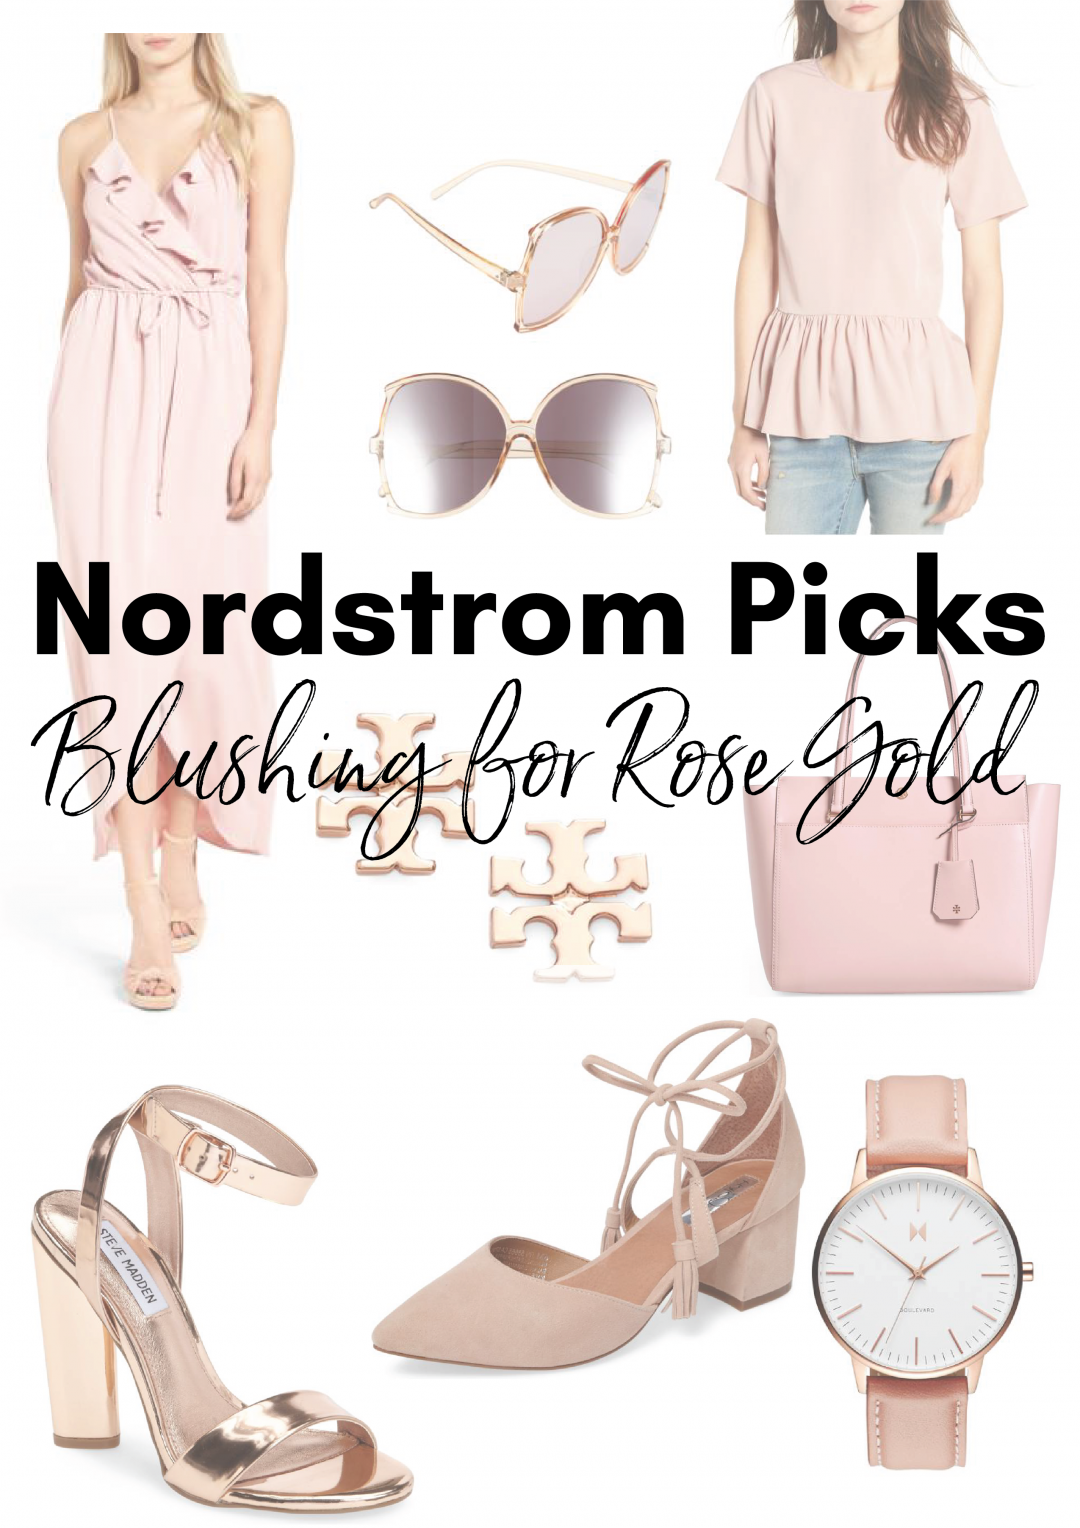 7950c38bd This Lovely Life - Nordstrom Picks  Blushing for Rose Gold